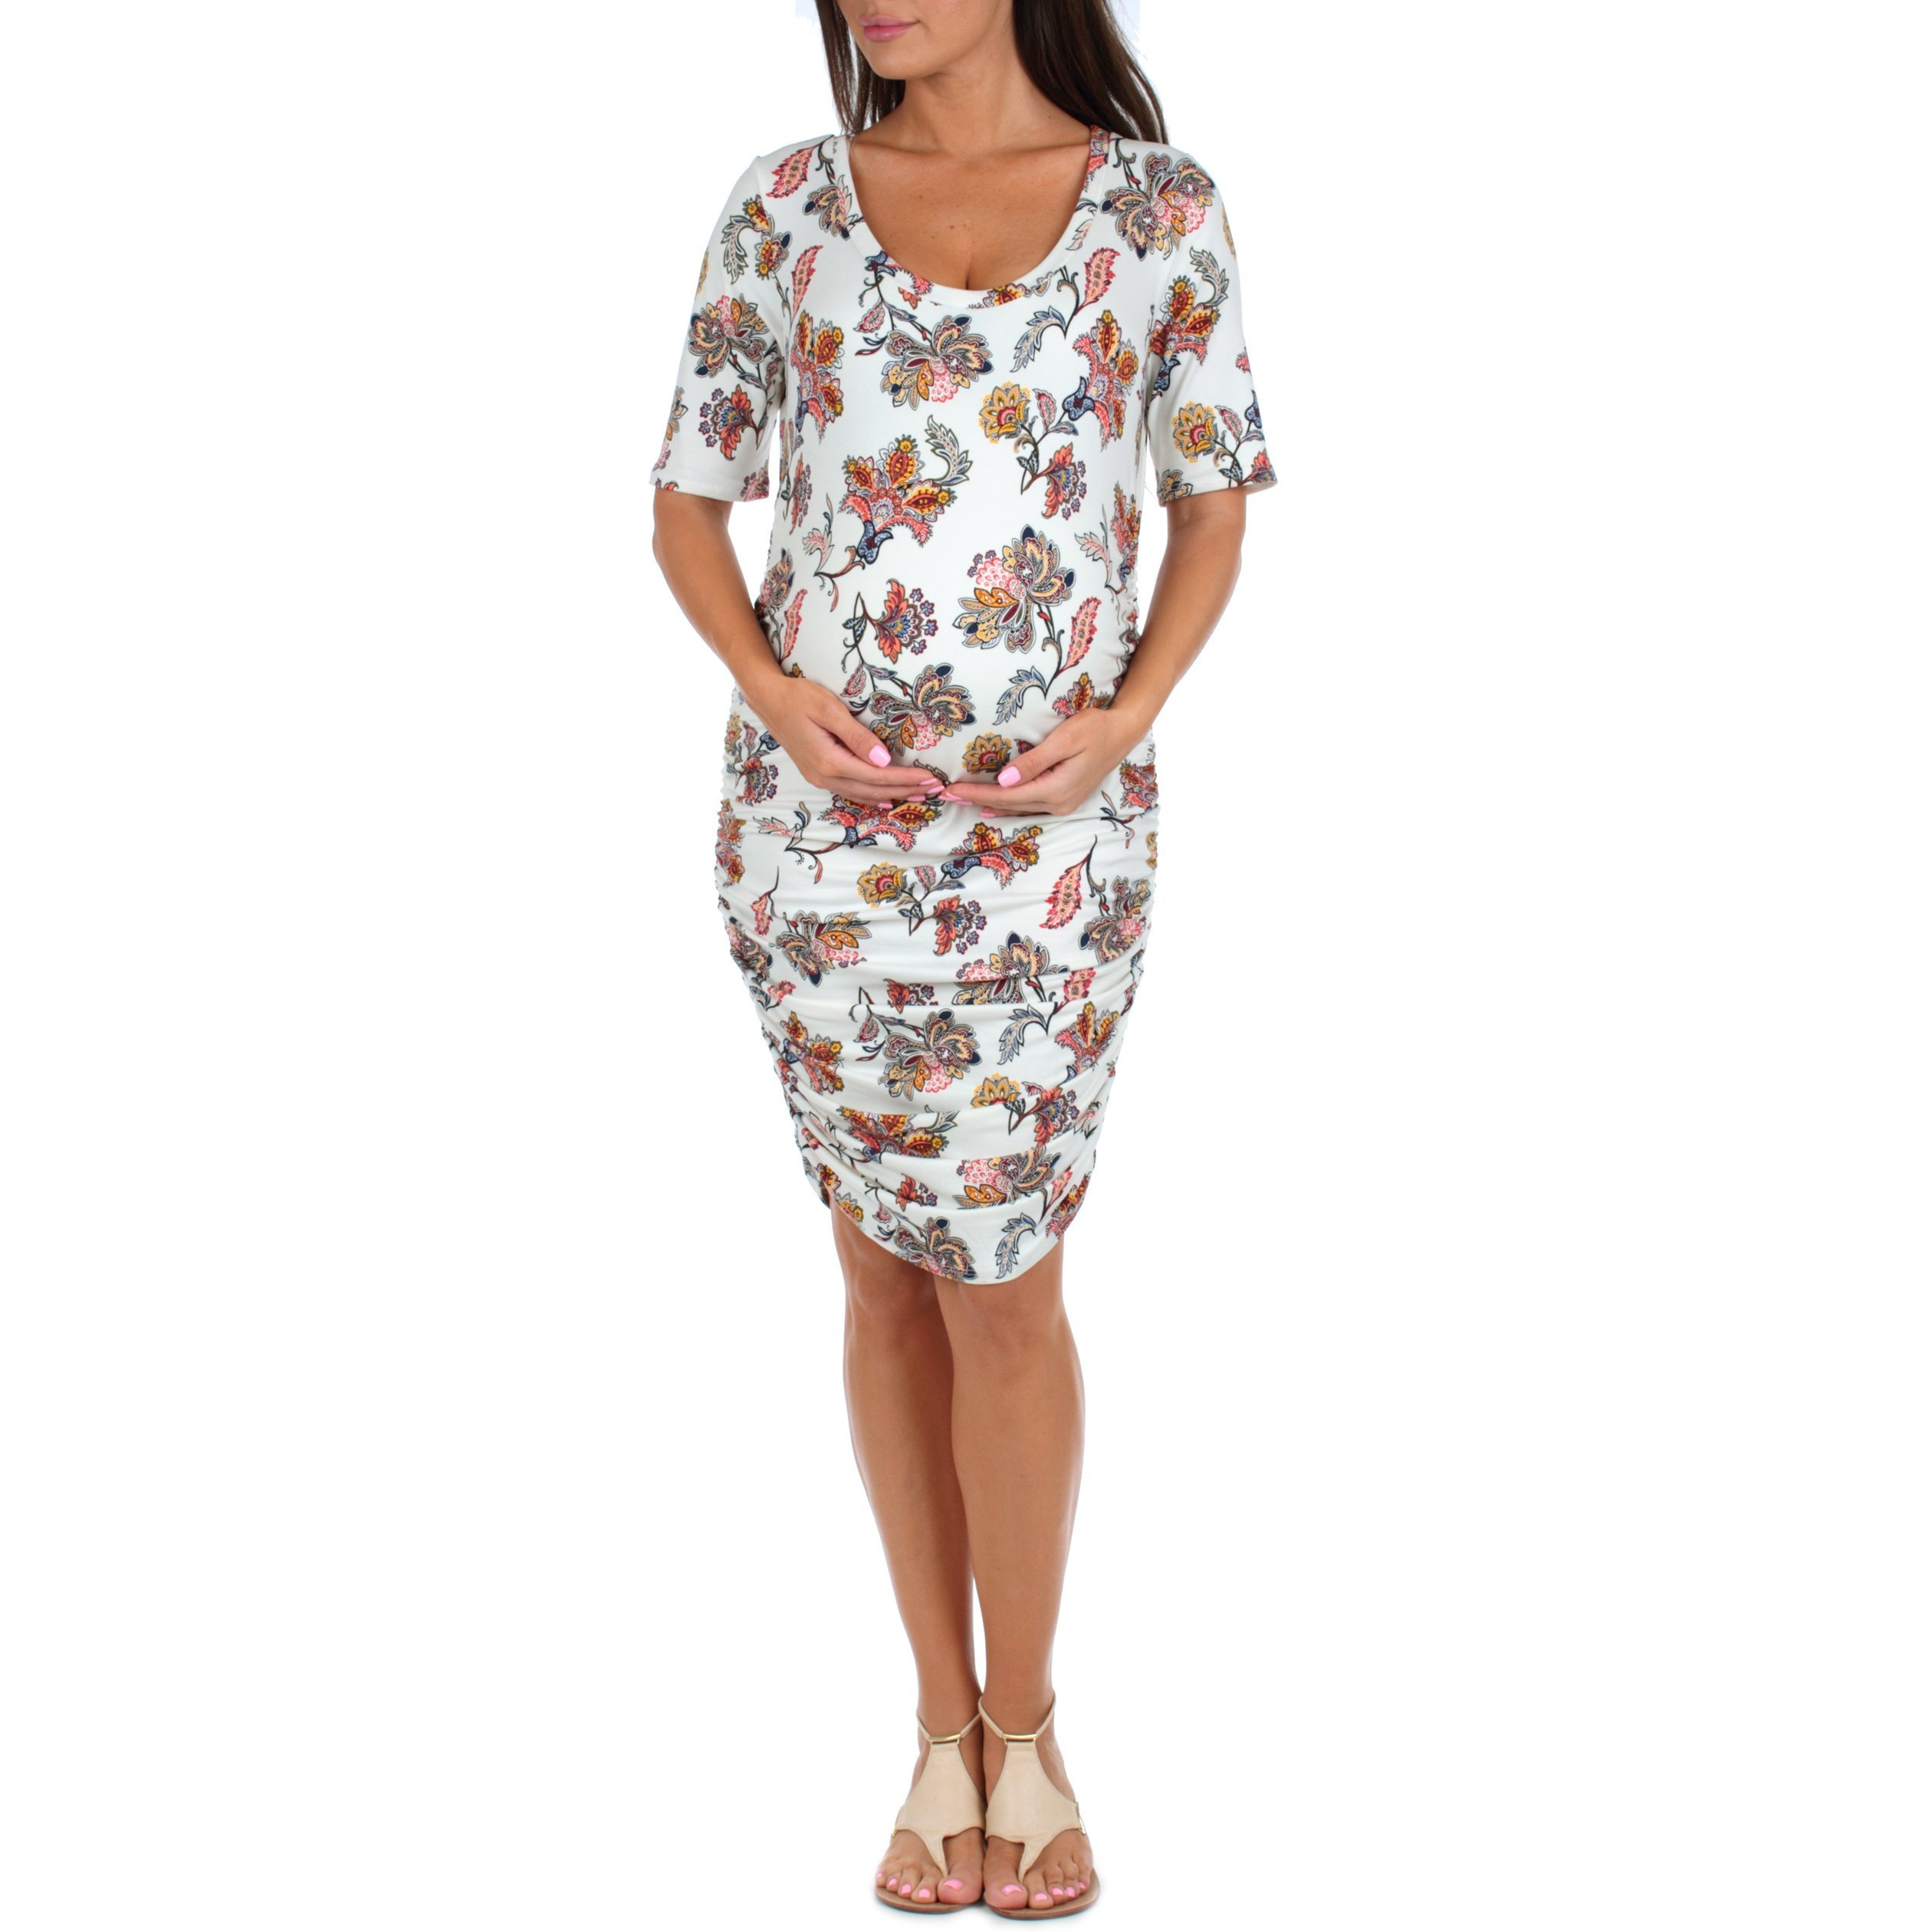 Women's Maternity Ruched Dress by Mother Bee in regular and Plus sizes